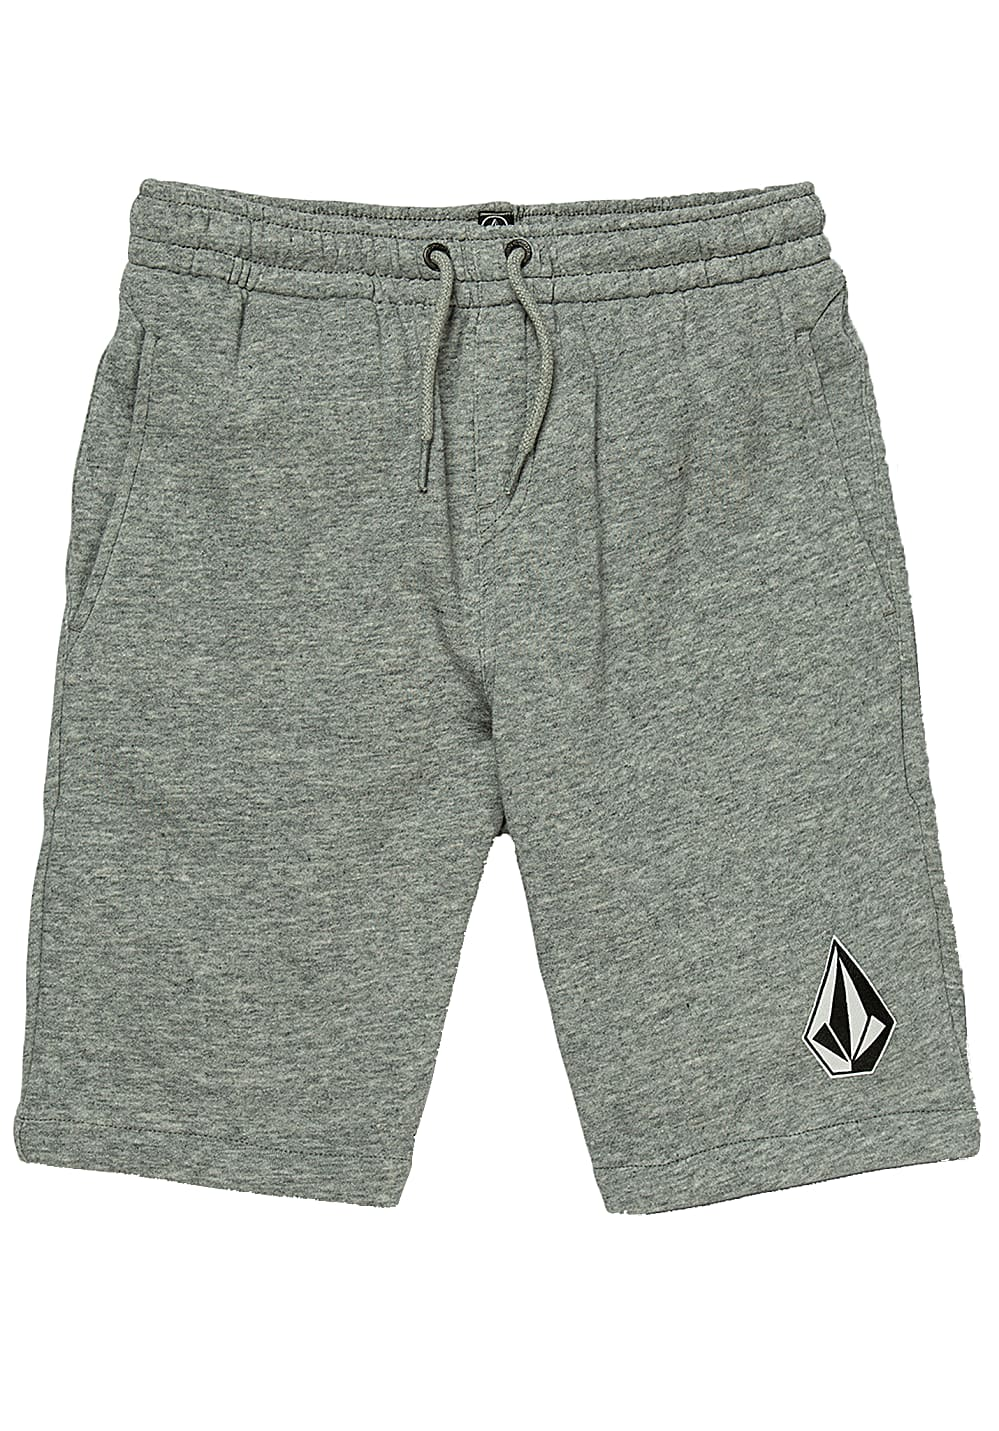 Boyshosen - Volcom Deadly Stns Flc Sht Shorts Grau - Onlineshop Planet Sports